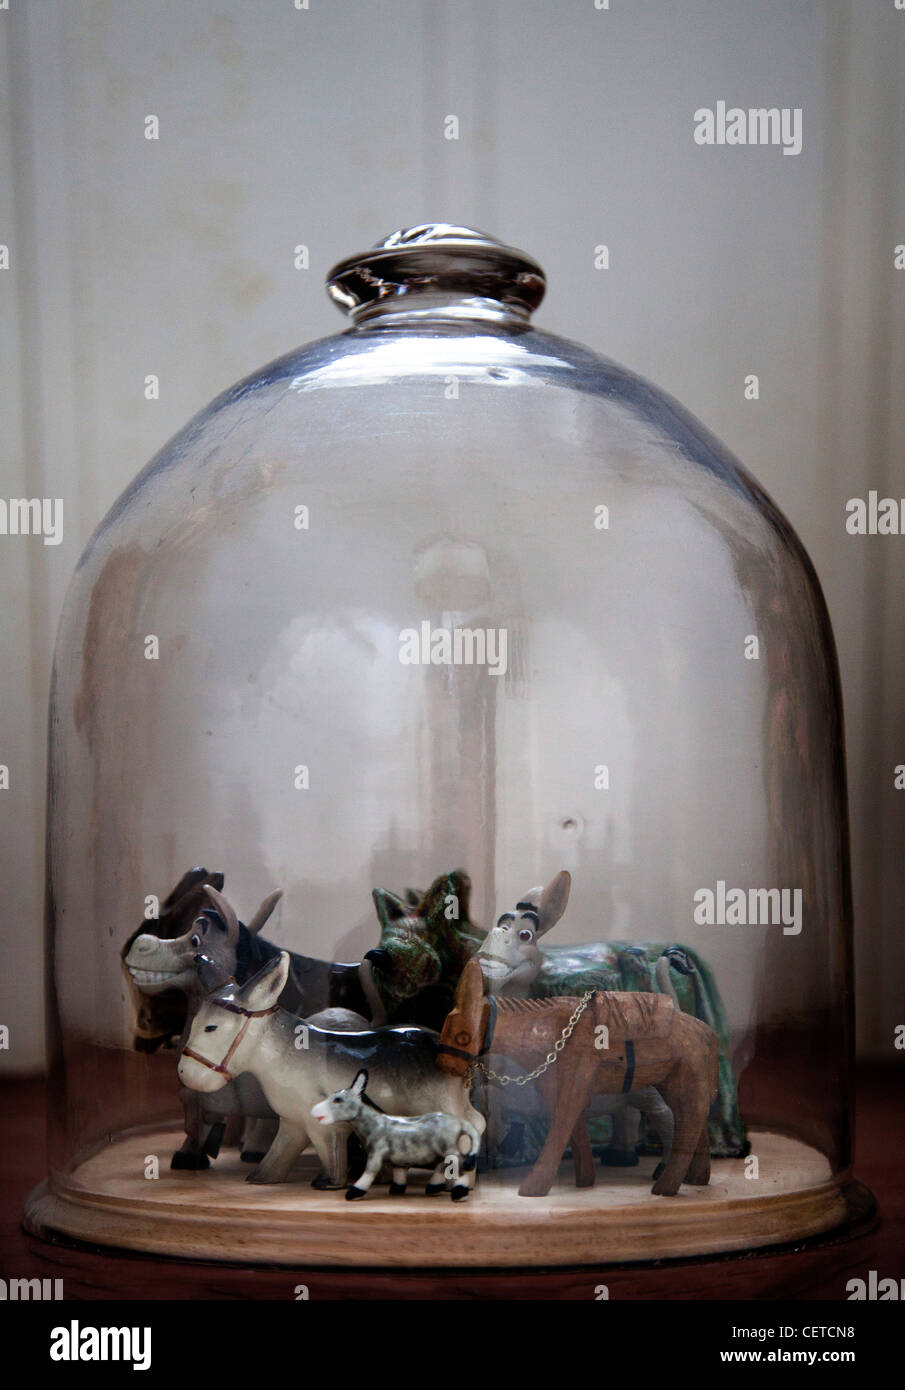 Donkey models in bell jar - Stock Image